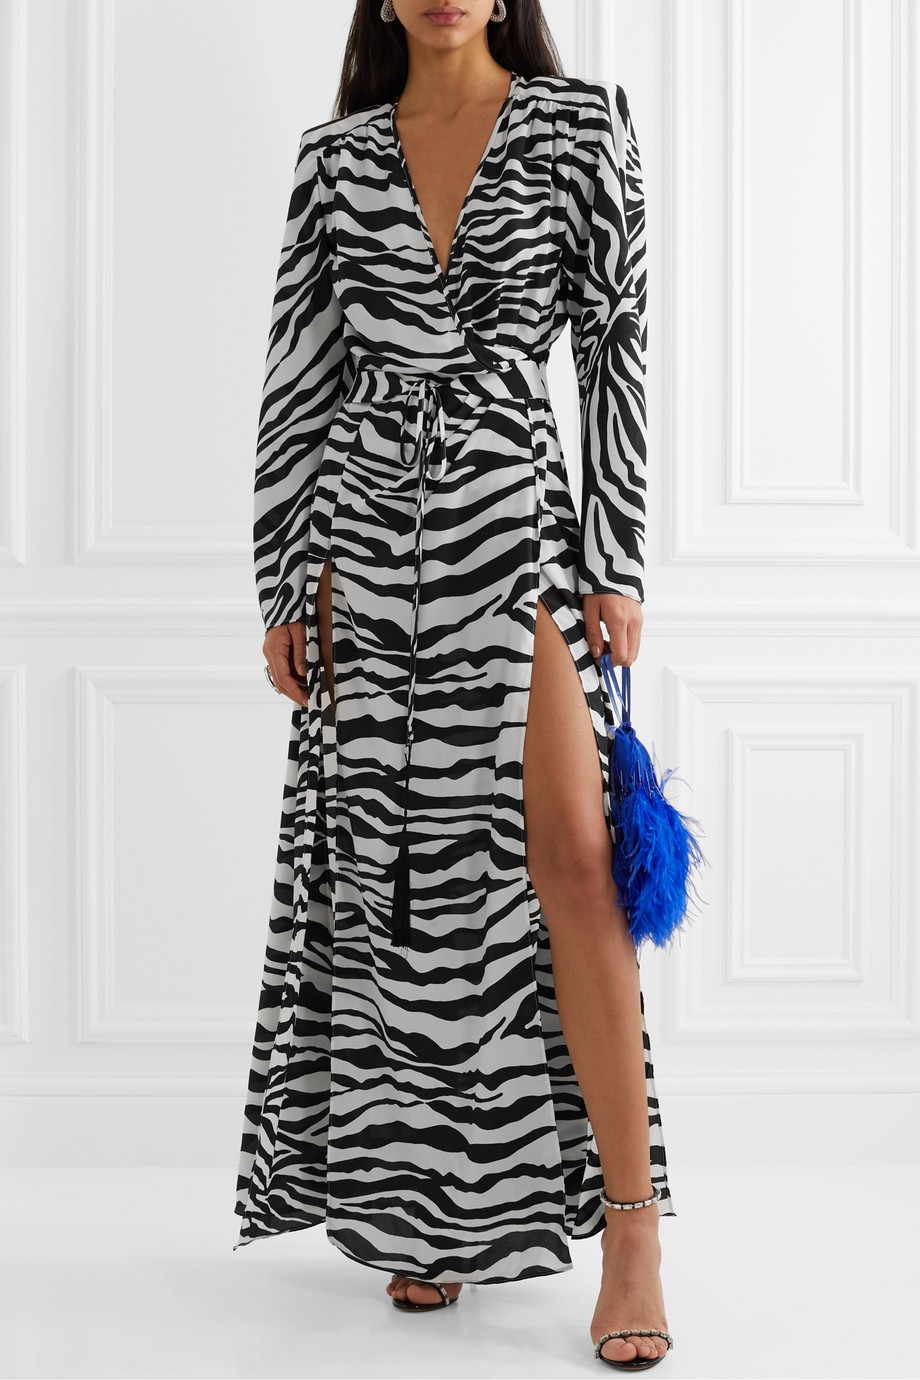 The Attico Zebra-print crepe wrap maxi dress